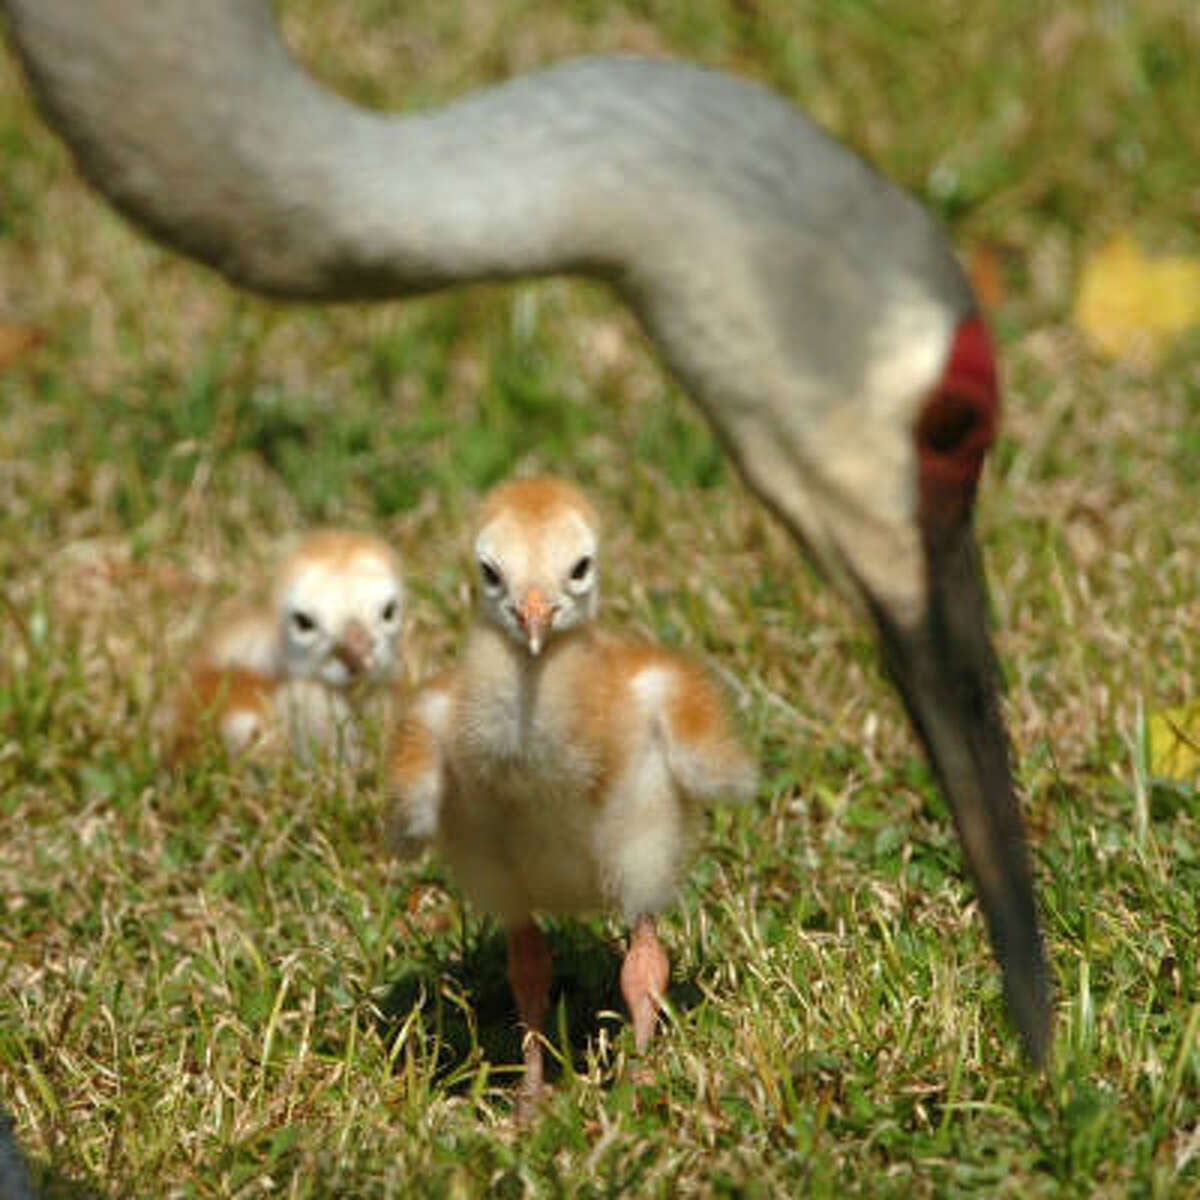 Two young Sandhill Cranes, just three days old, watch as their mother searches for food in East Manatee County, Florida.